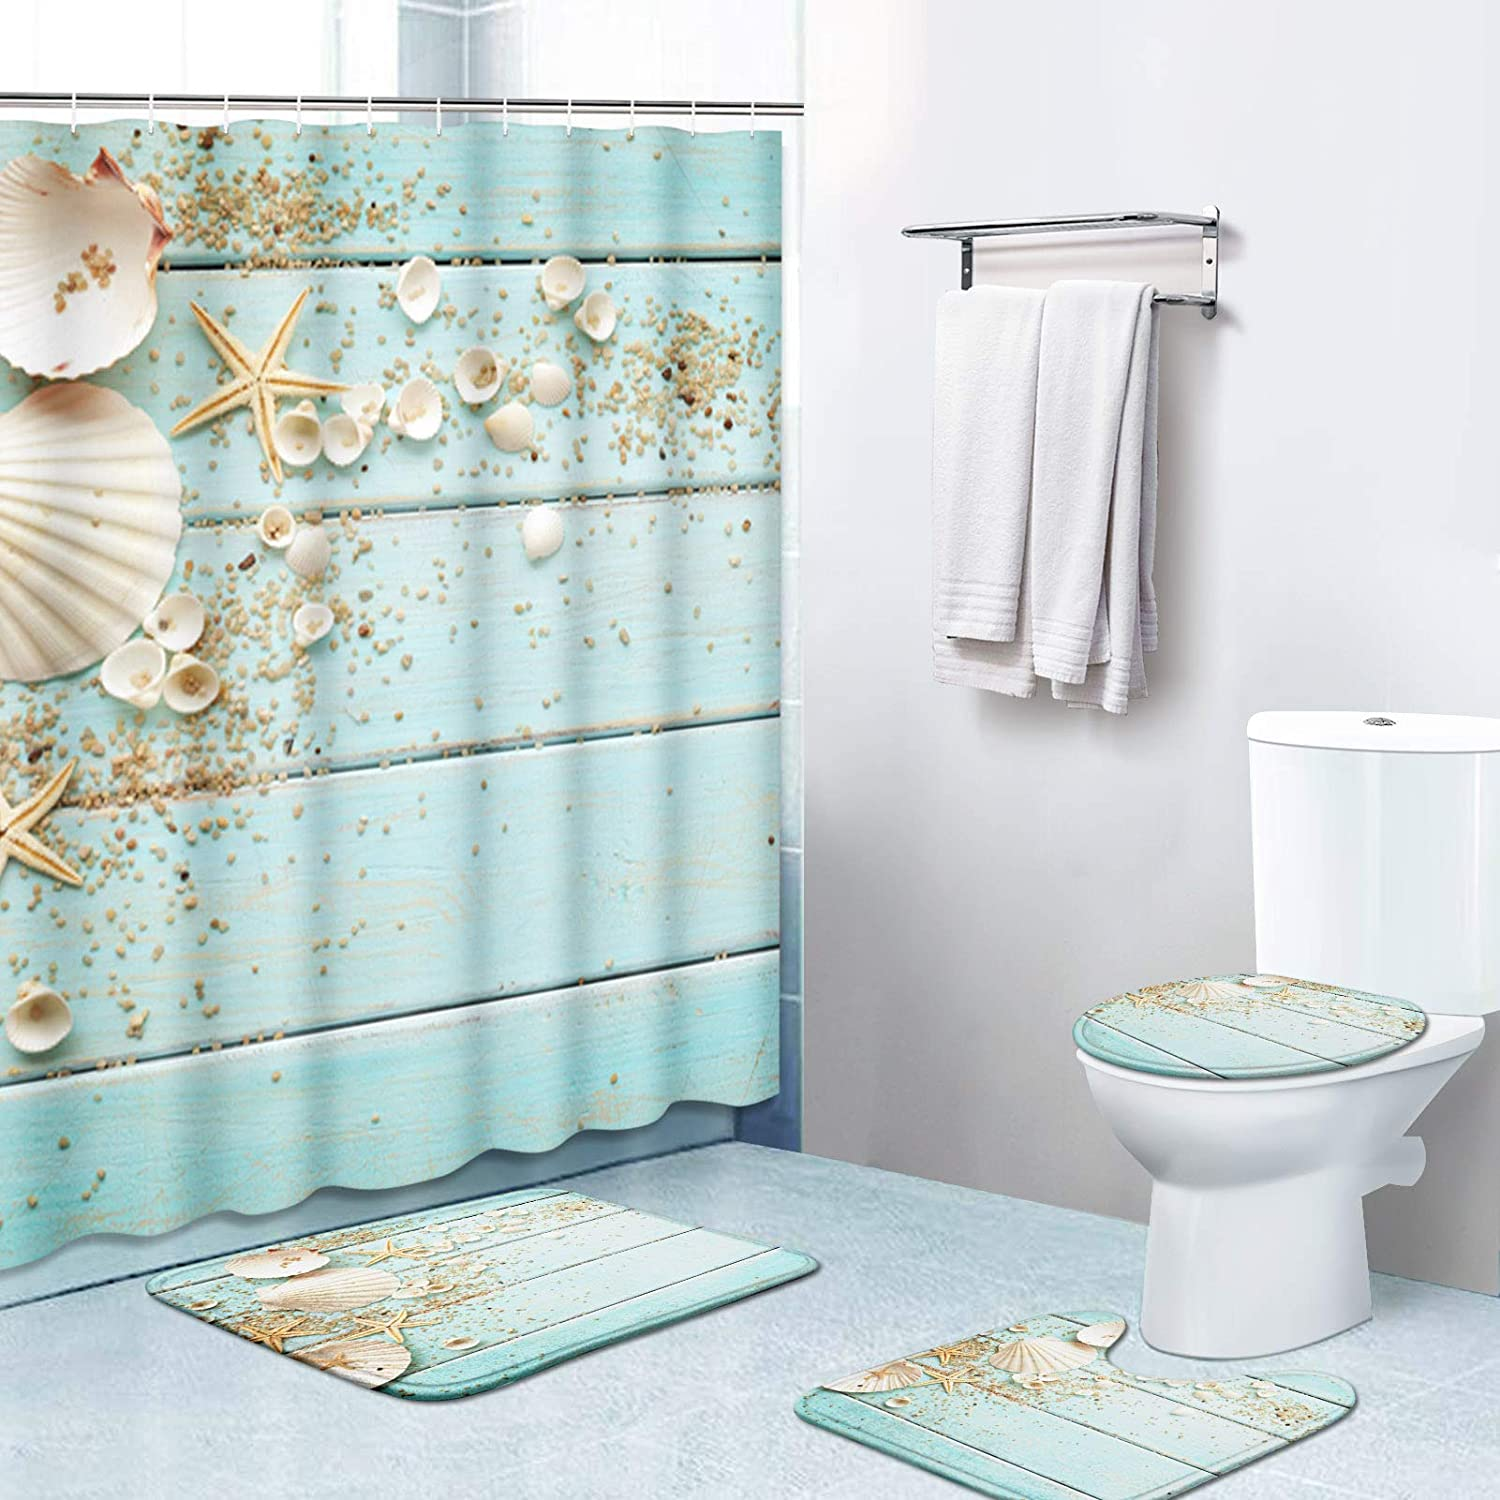 Britimes 4 Piece Shower Curtain Sets, with 12 Hooks, Seashells Wooden with Non-Slip Rugs, Toilet Lid Cover and Bath Mat, Durable and Waterproof, for Bathroom Decor Set, 72